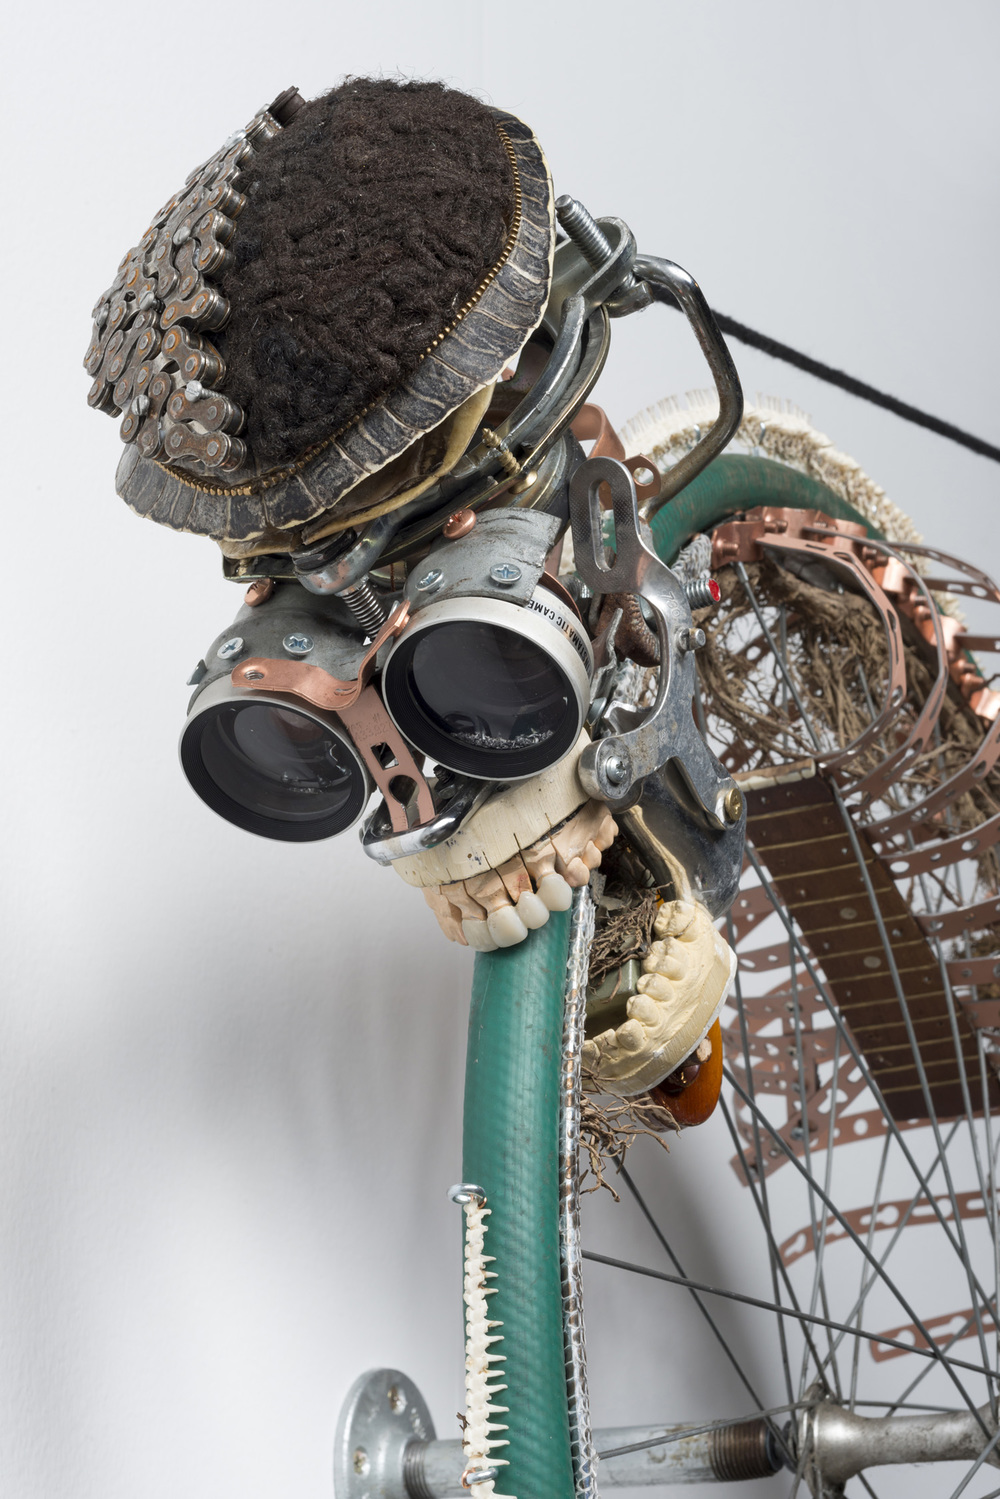 Lorna Williams-Ouroboros-2013-hair, plumbing hardware, violin parts, photography lenses, snake vertebrae, bike wheel, hose, ukulele neck, bike chain, plaster teeth, bike seat, speaker, snake shedding, root, rope, cement-88x60x13-detail.jpg